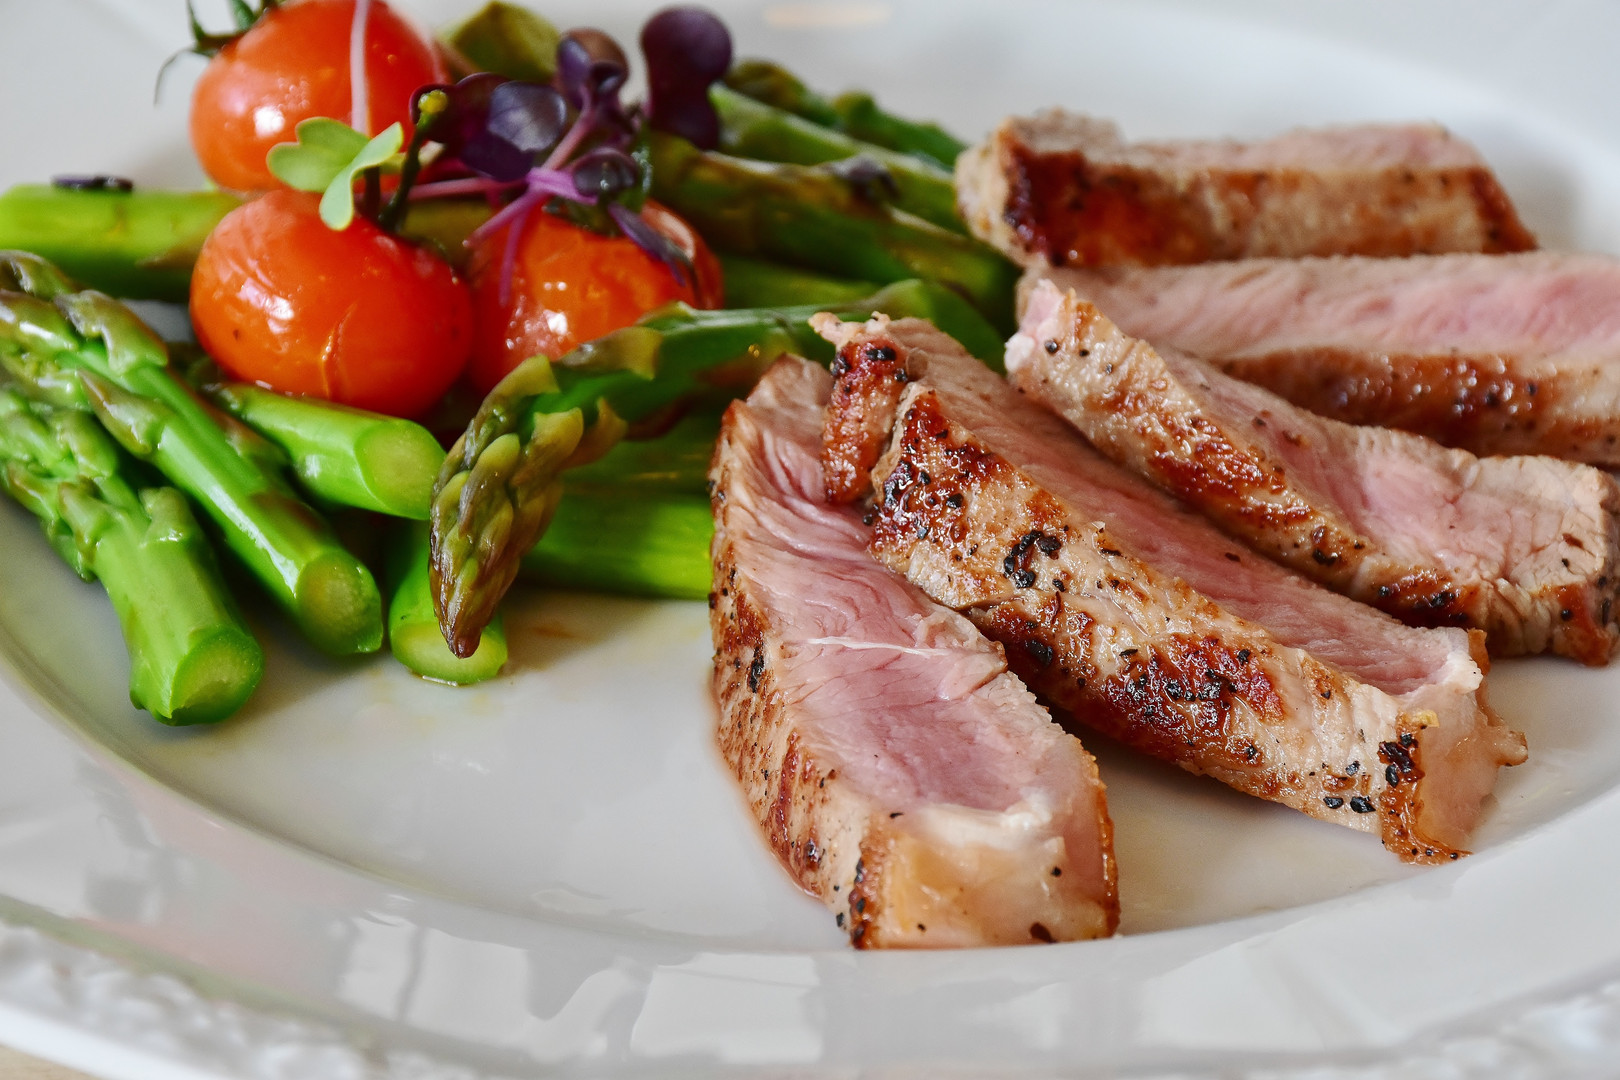 asparagus-steak-veal-steak-veal-361184.j